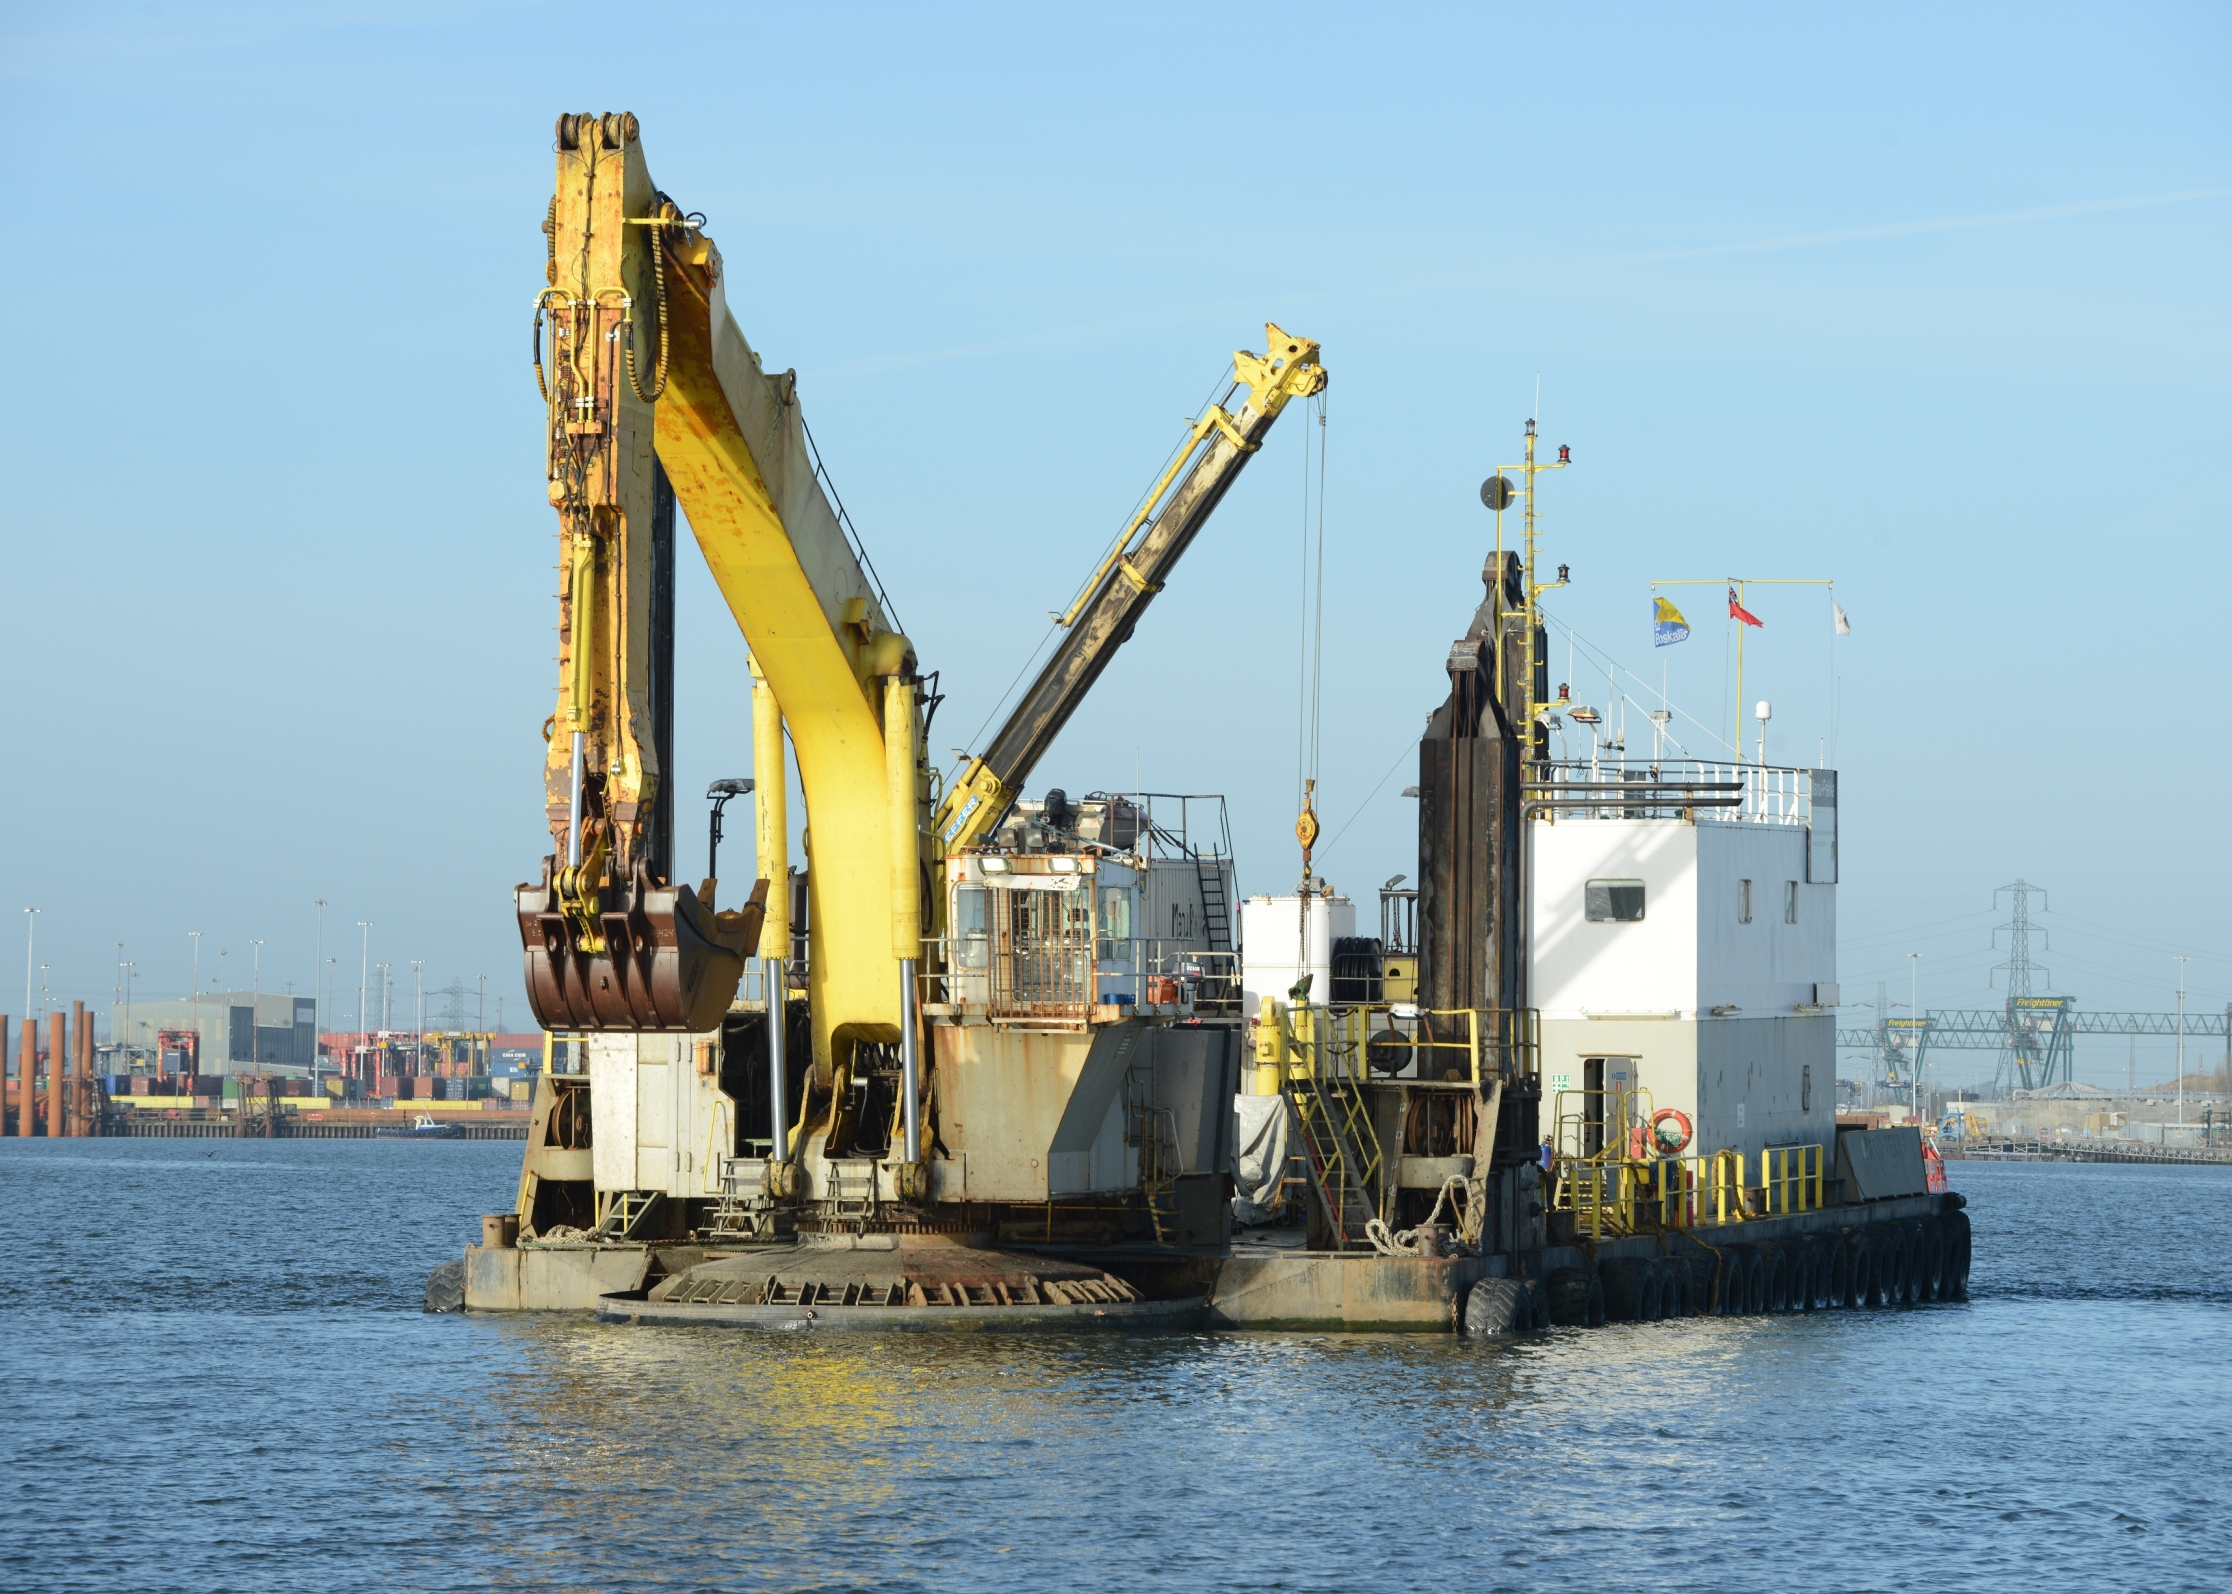 49 Meter Length Dredger